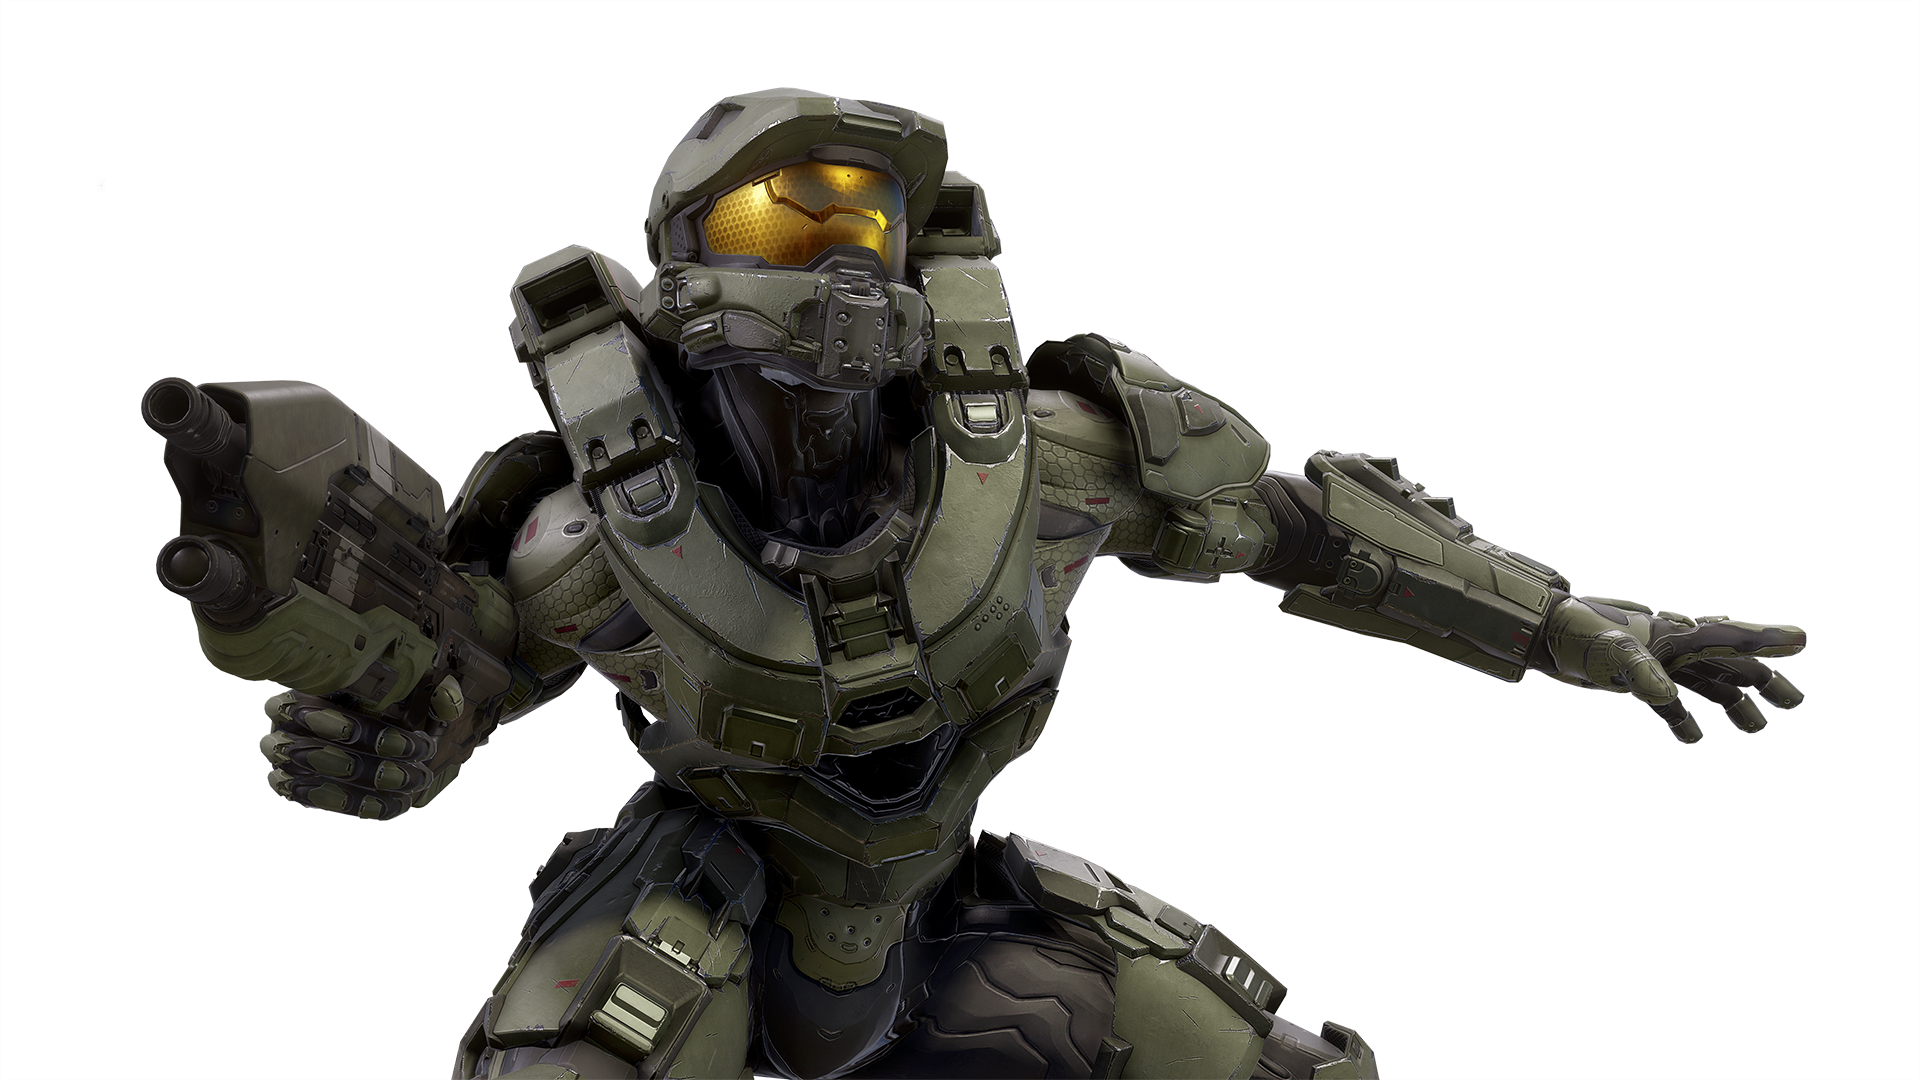 h5-guardians-render-master-chief-06.png